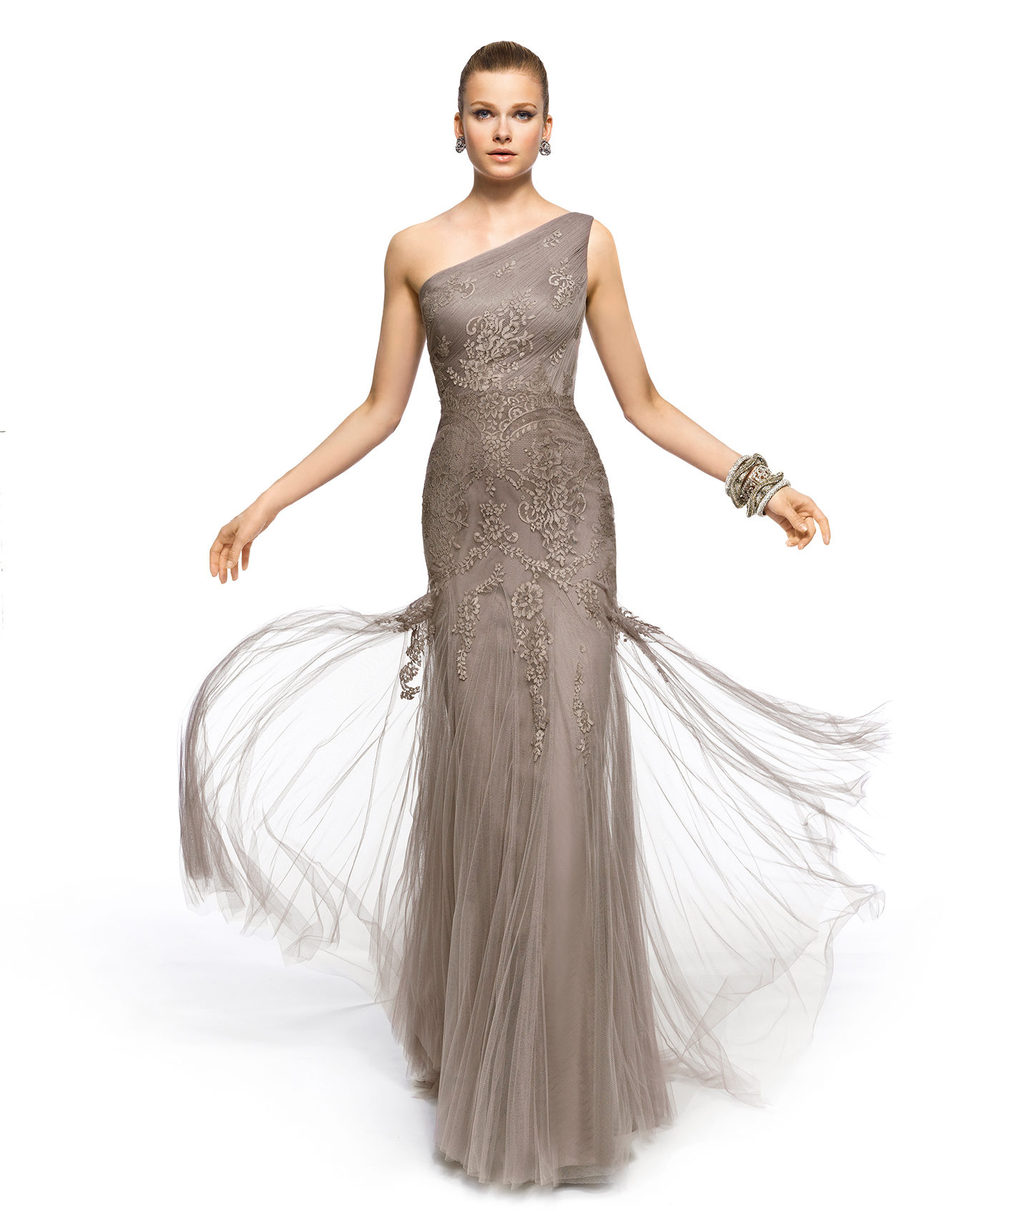 Beige one shoulder gown with lace applique for MOB or bridesmaids